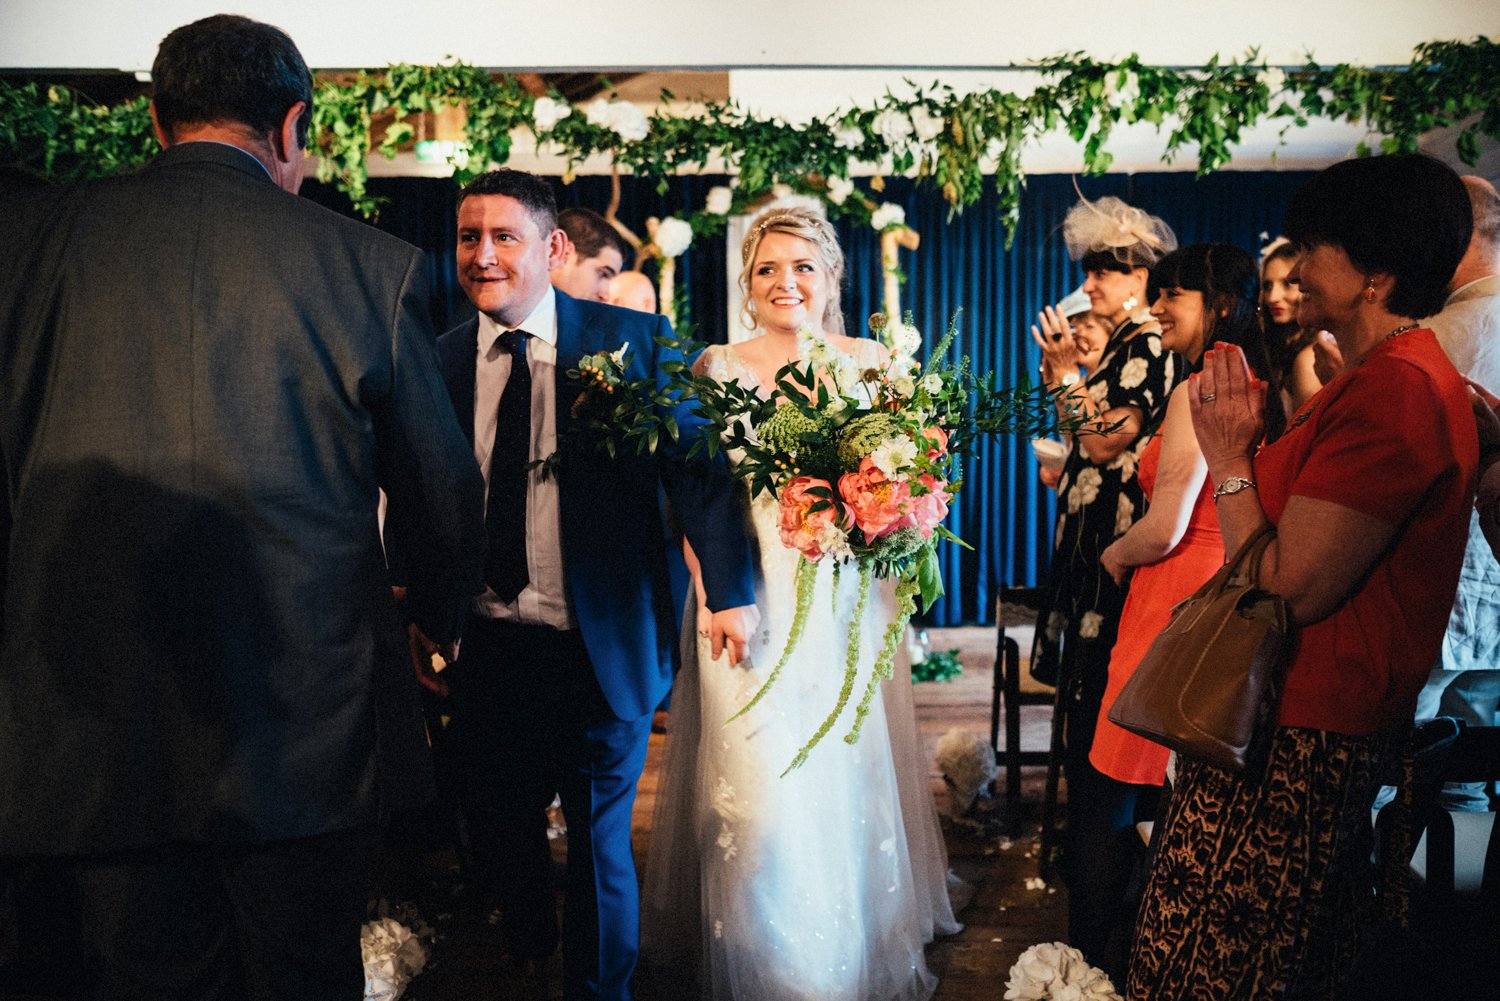 Guests congratulate married couple BABB